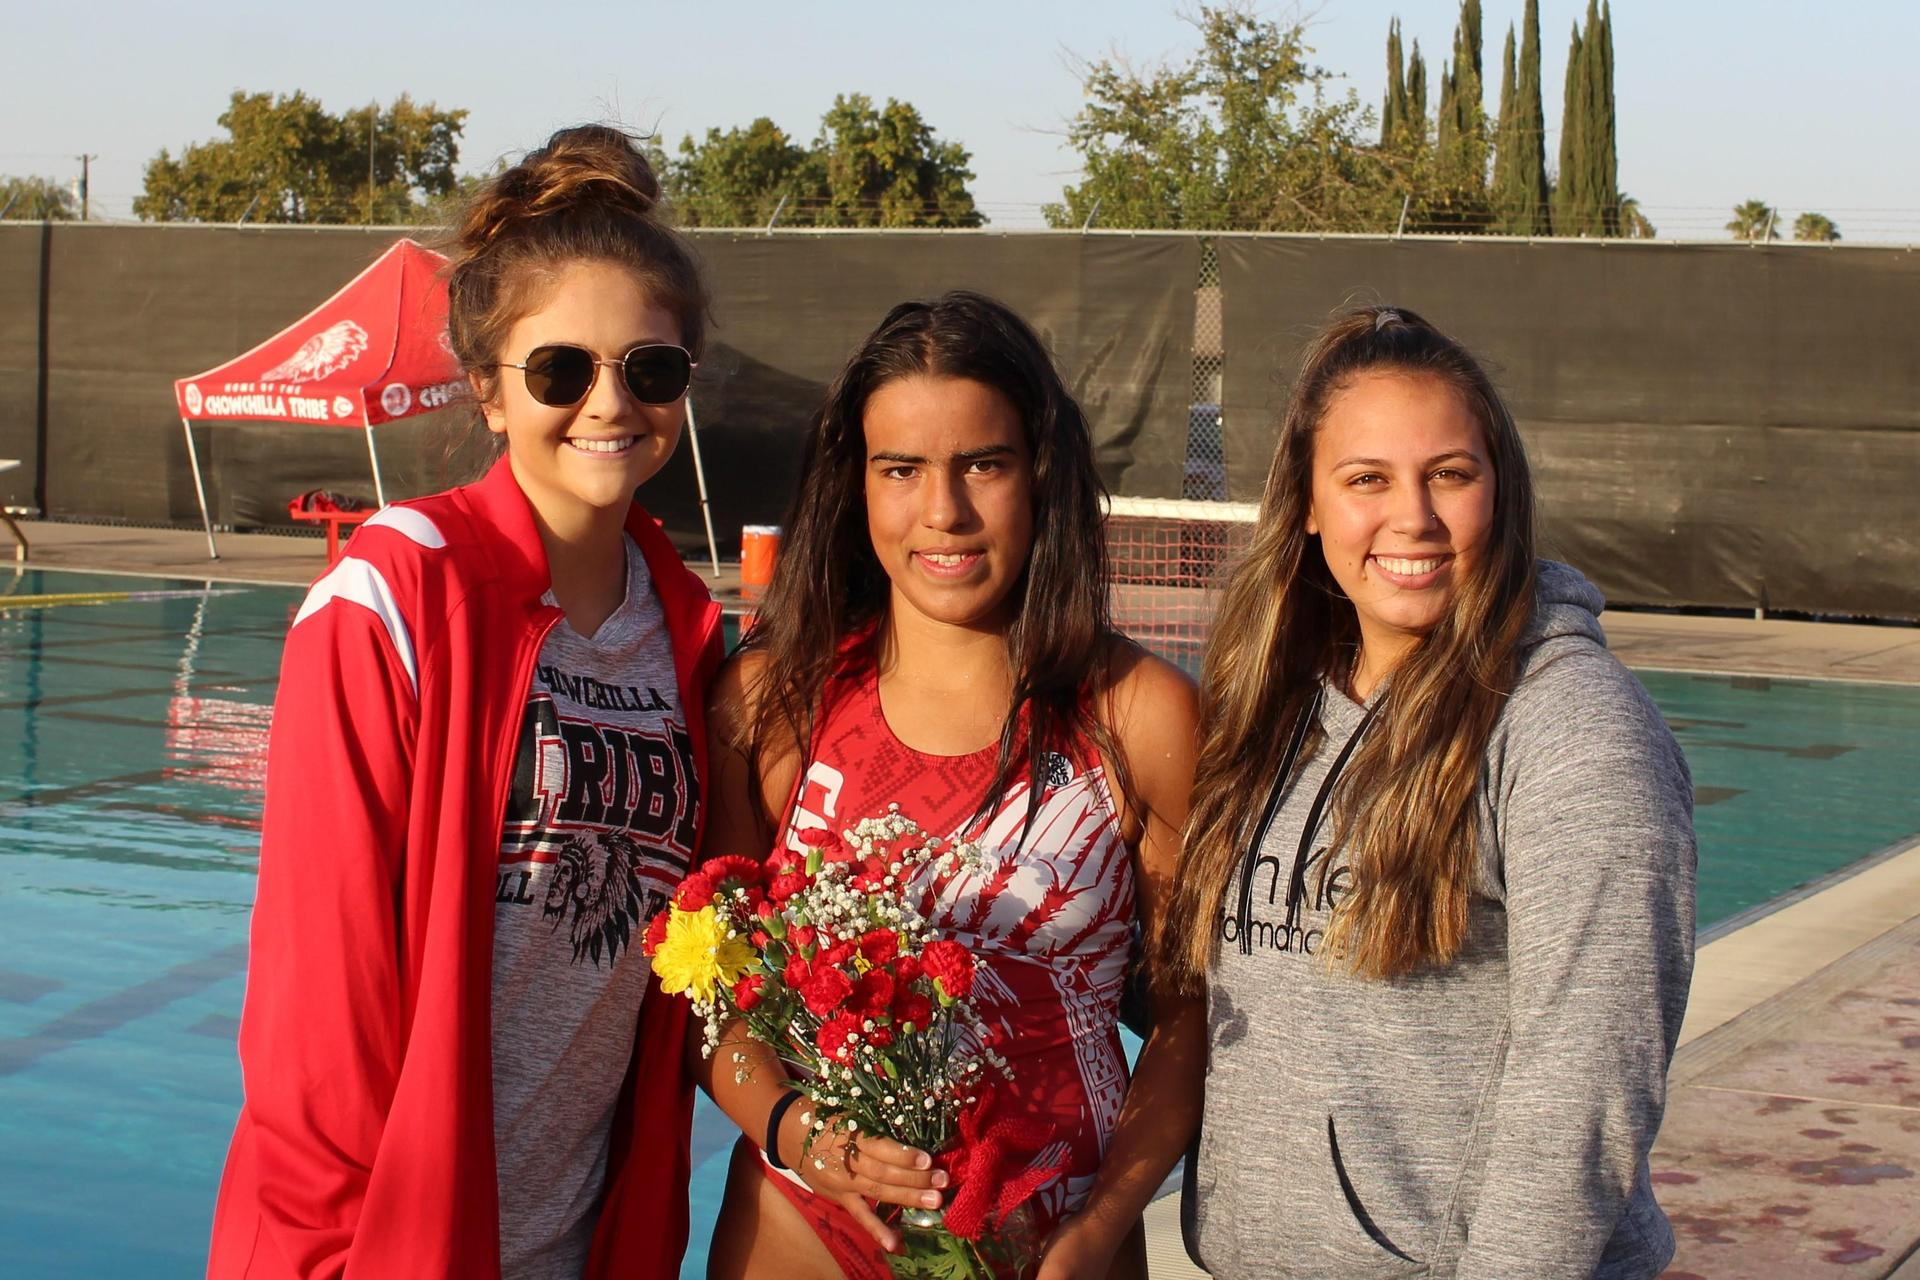 Jennifer Palomino, her coach and cousin.